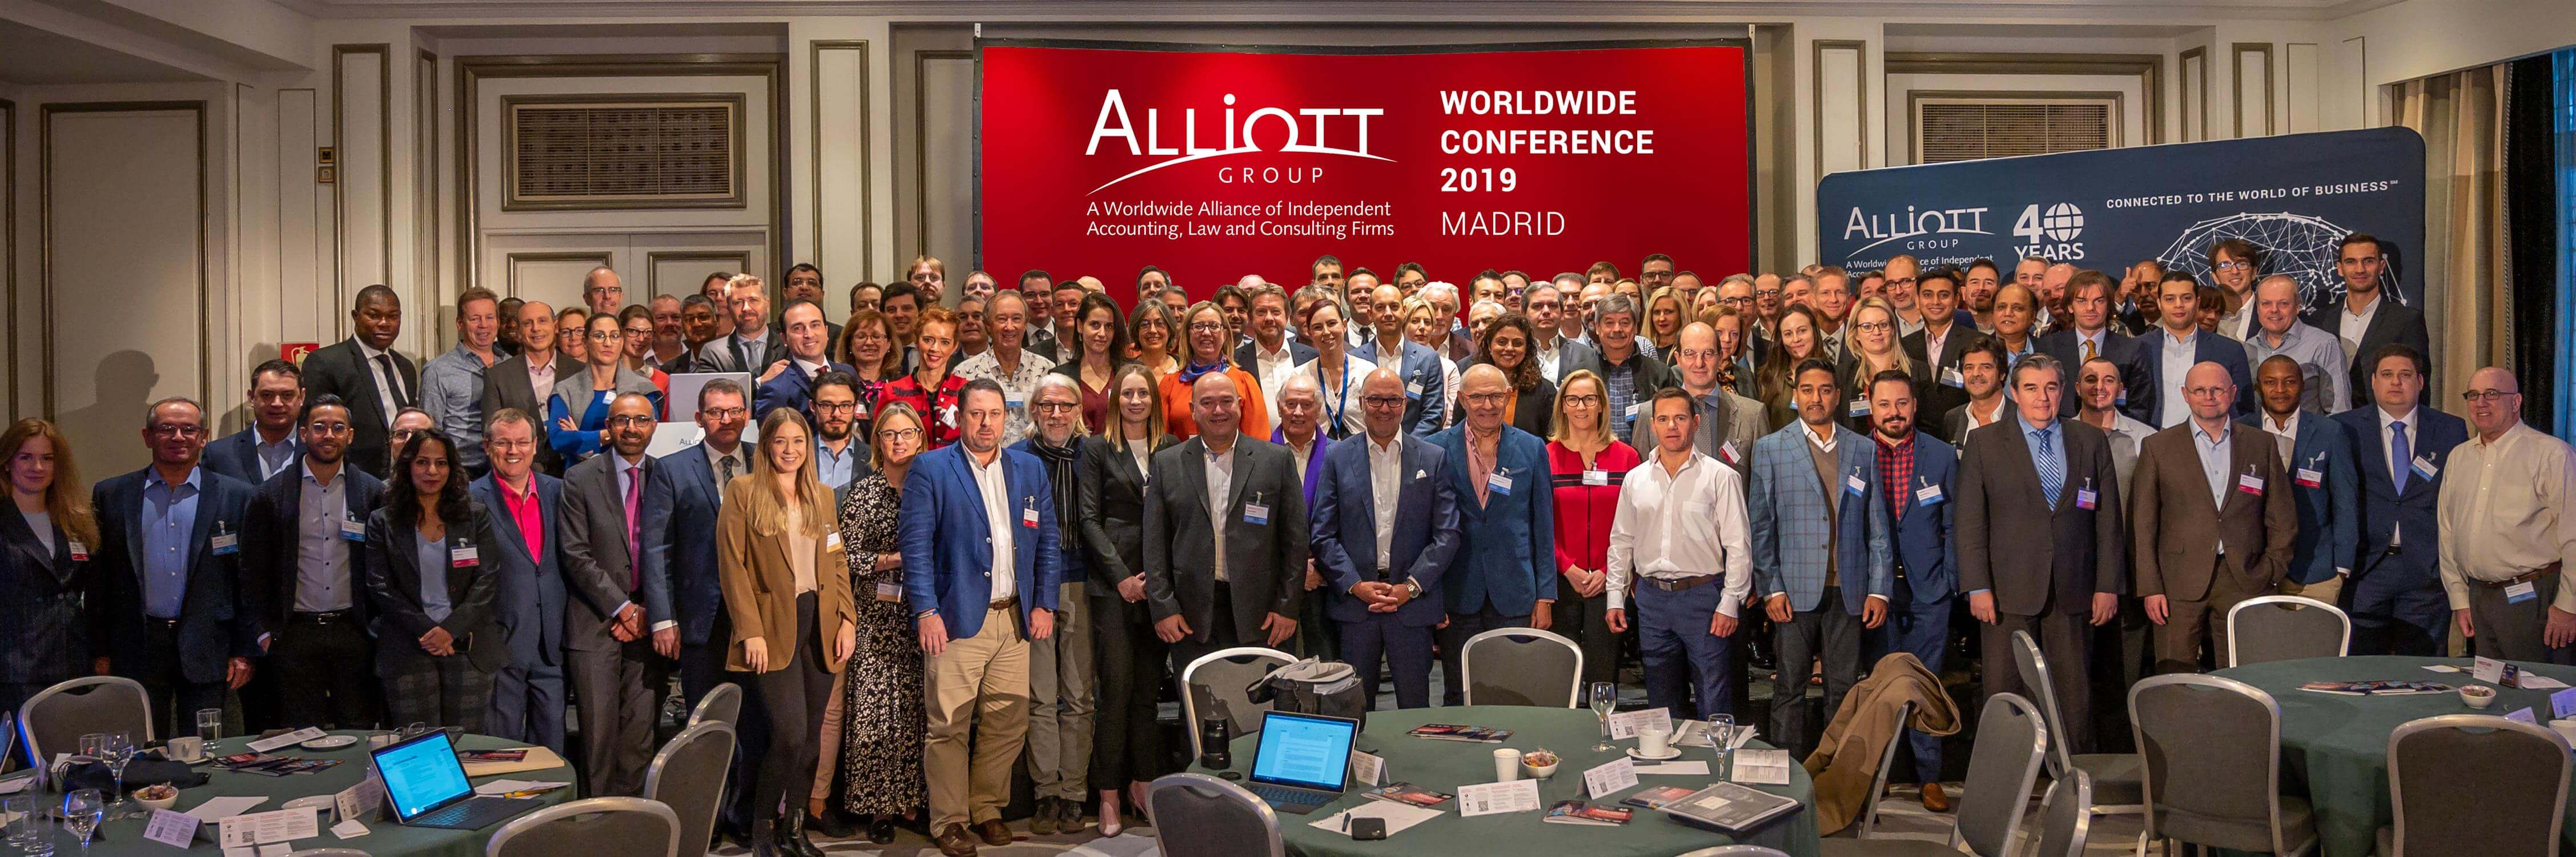 Madrid Conference Photo